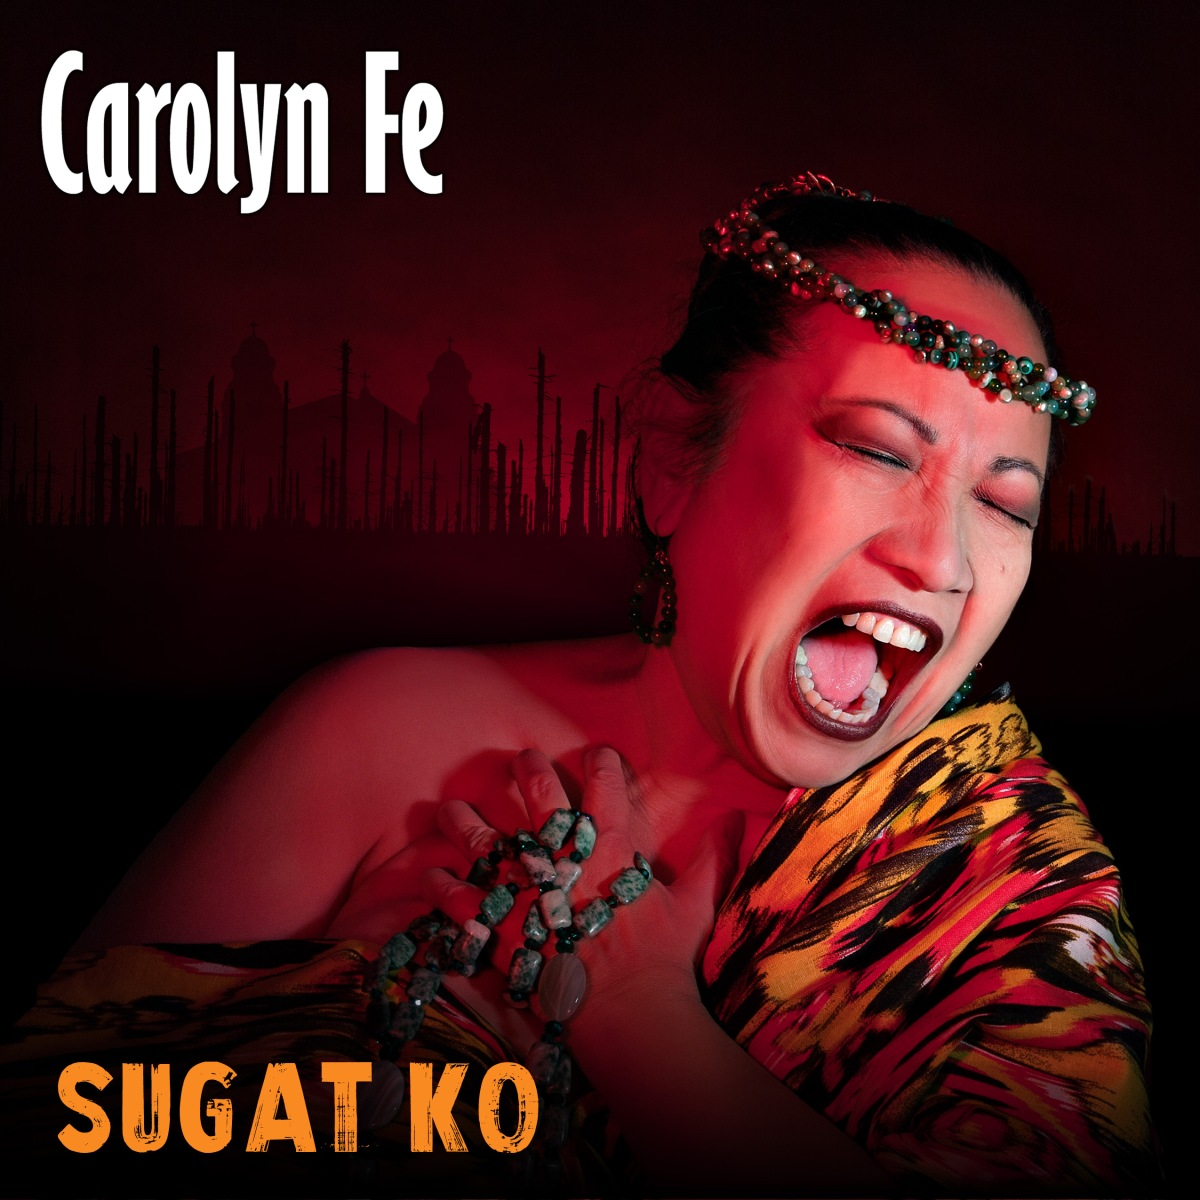 Interview: Blues singer/songwriter & actor Carolyn Fe